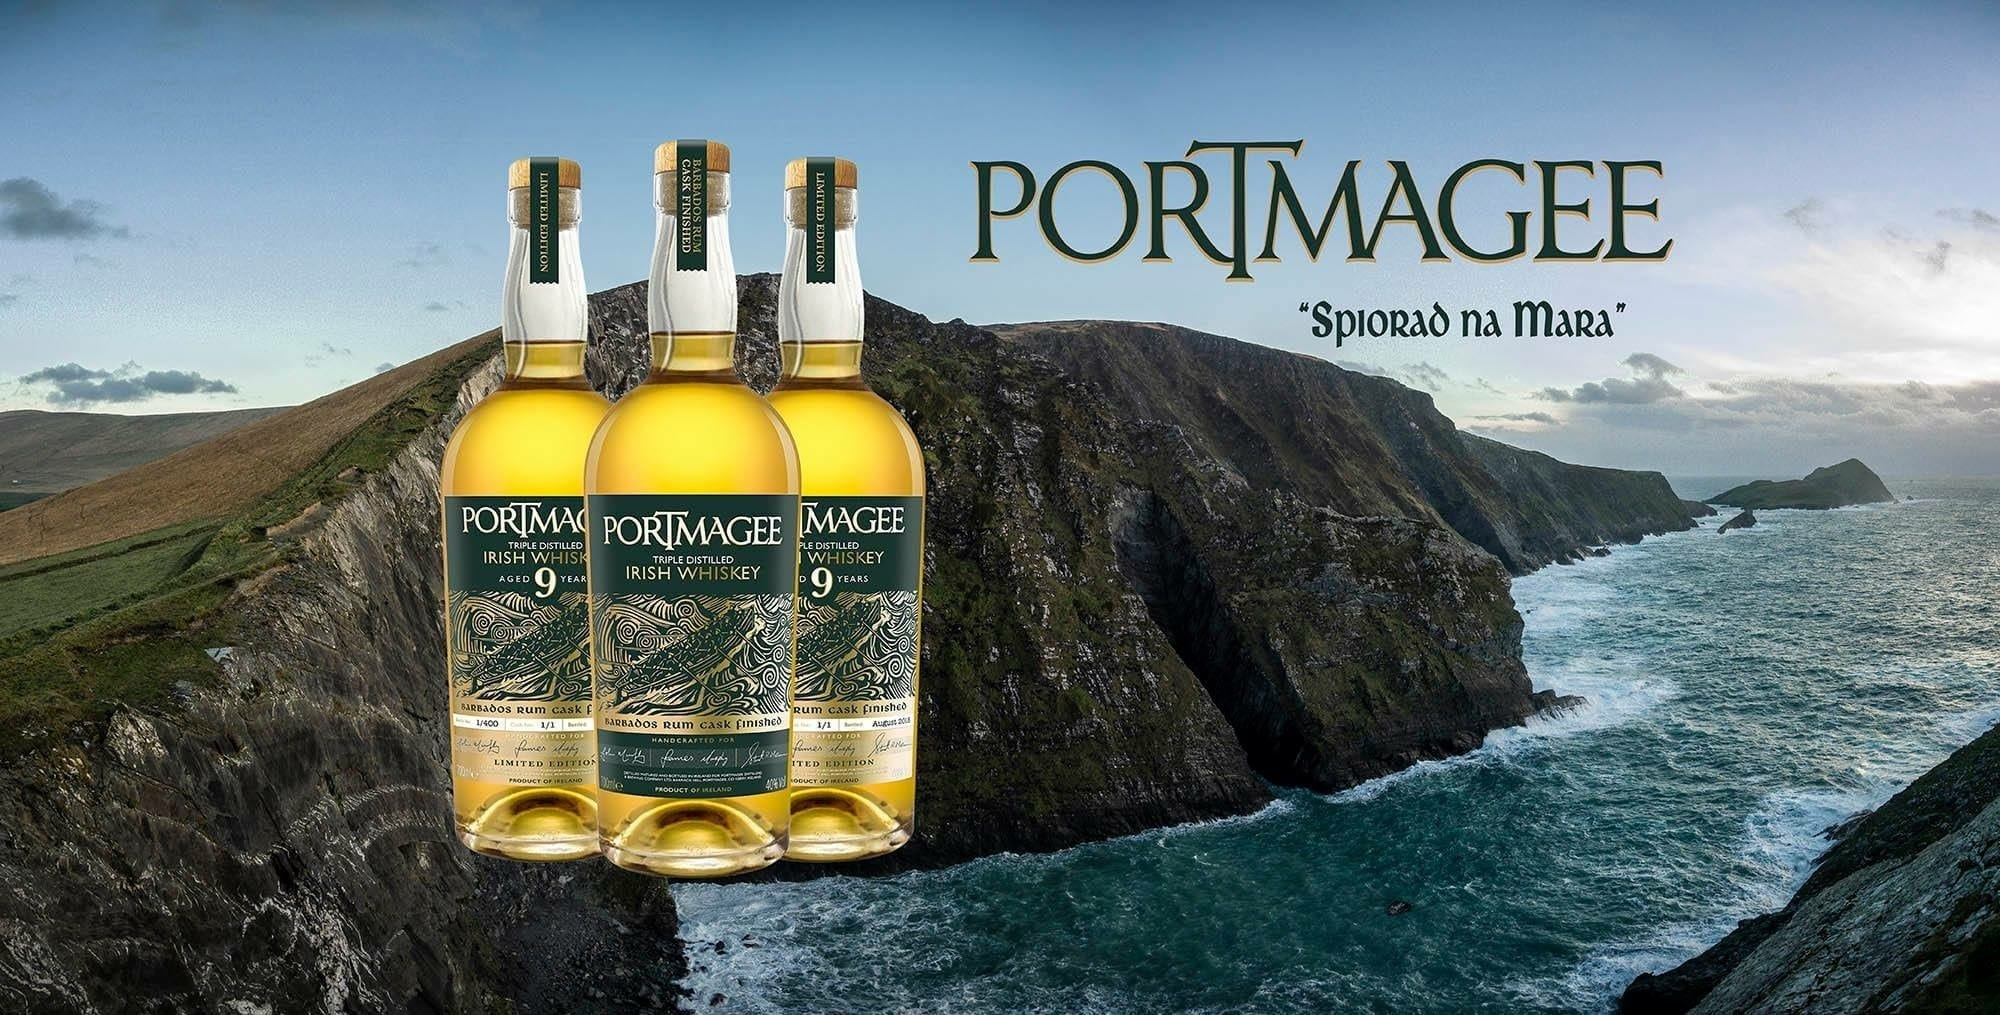 Portmagee 9 Year Old Irish Whiskey Review by Stuart McNamara Irish Whiskey Blogger